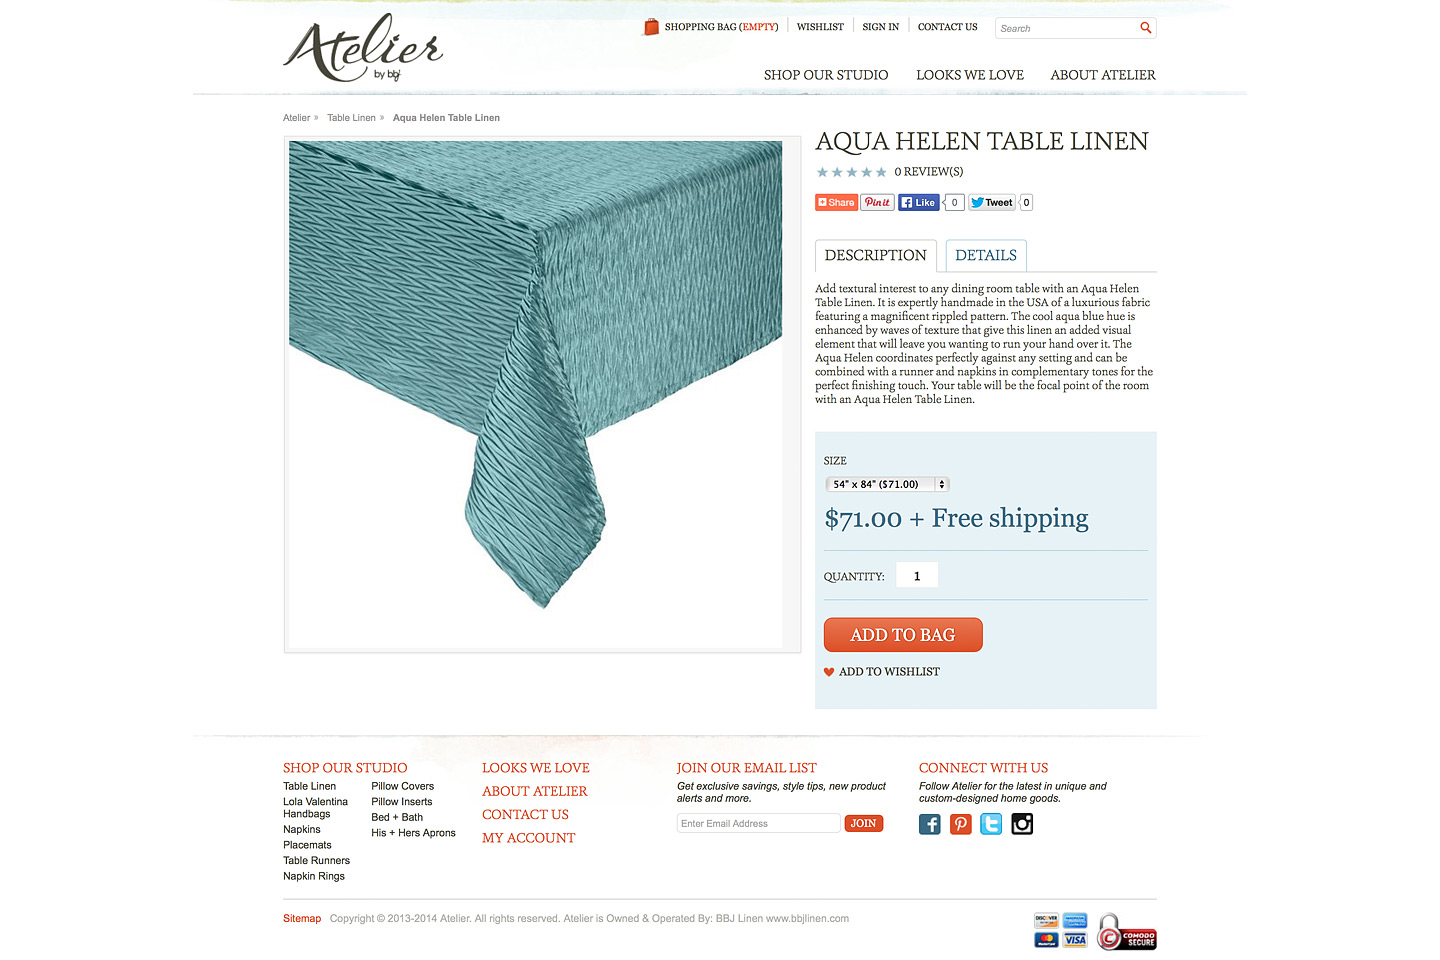 a screen capture of the atelier by bbj aqua helen table linen product page, including a large image of the product featured on this page